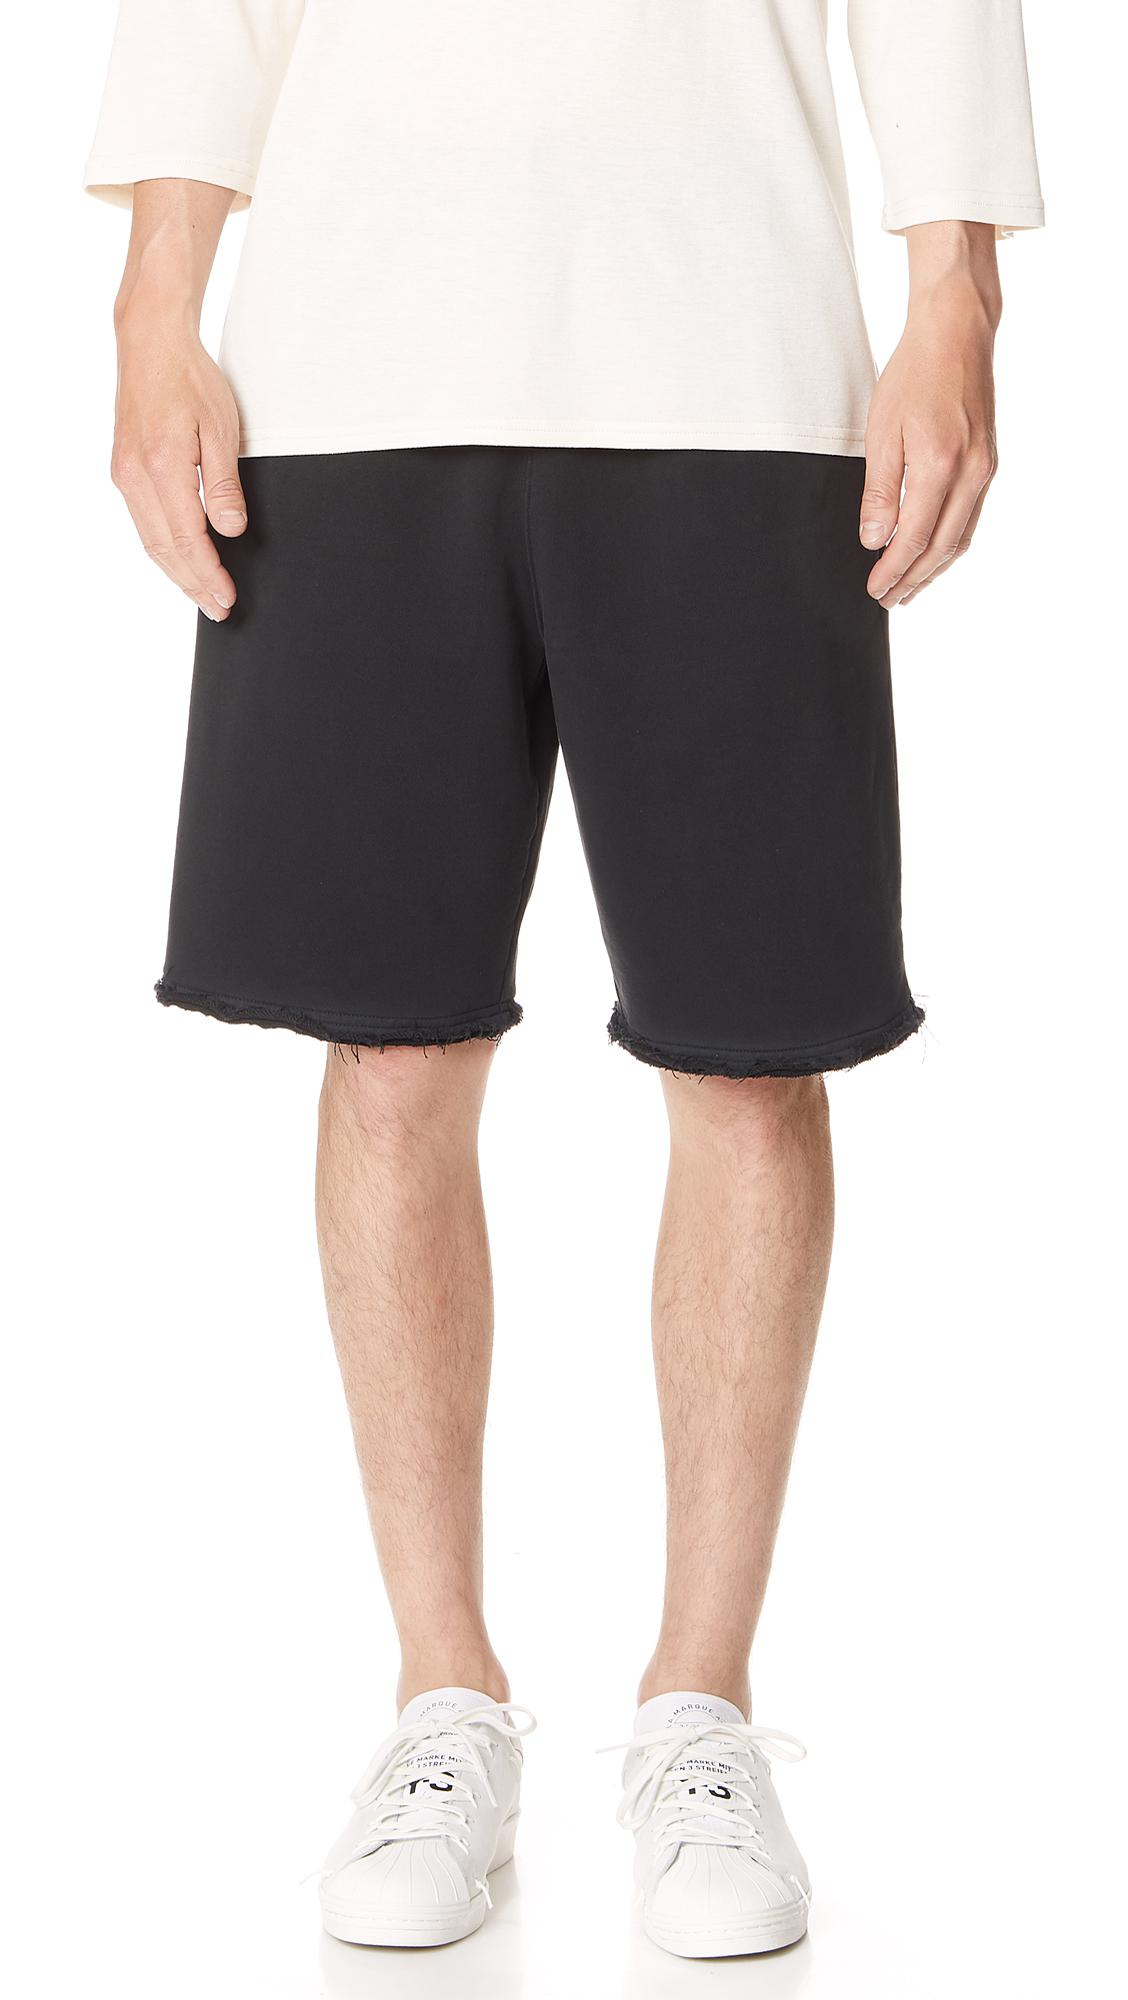 Helmut Lang Mens Distressed-Hem Knit Shorts For Cheap Online Discount Pick A Best Classic Countdown Package l3T0nBvQ